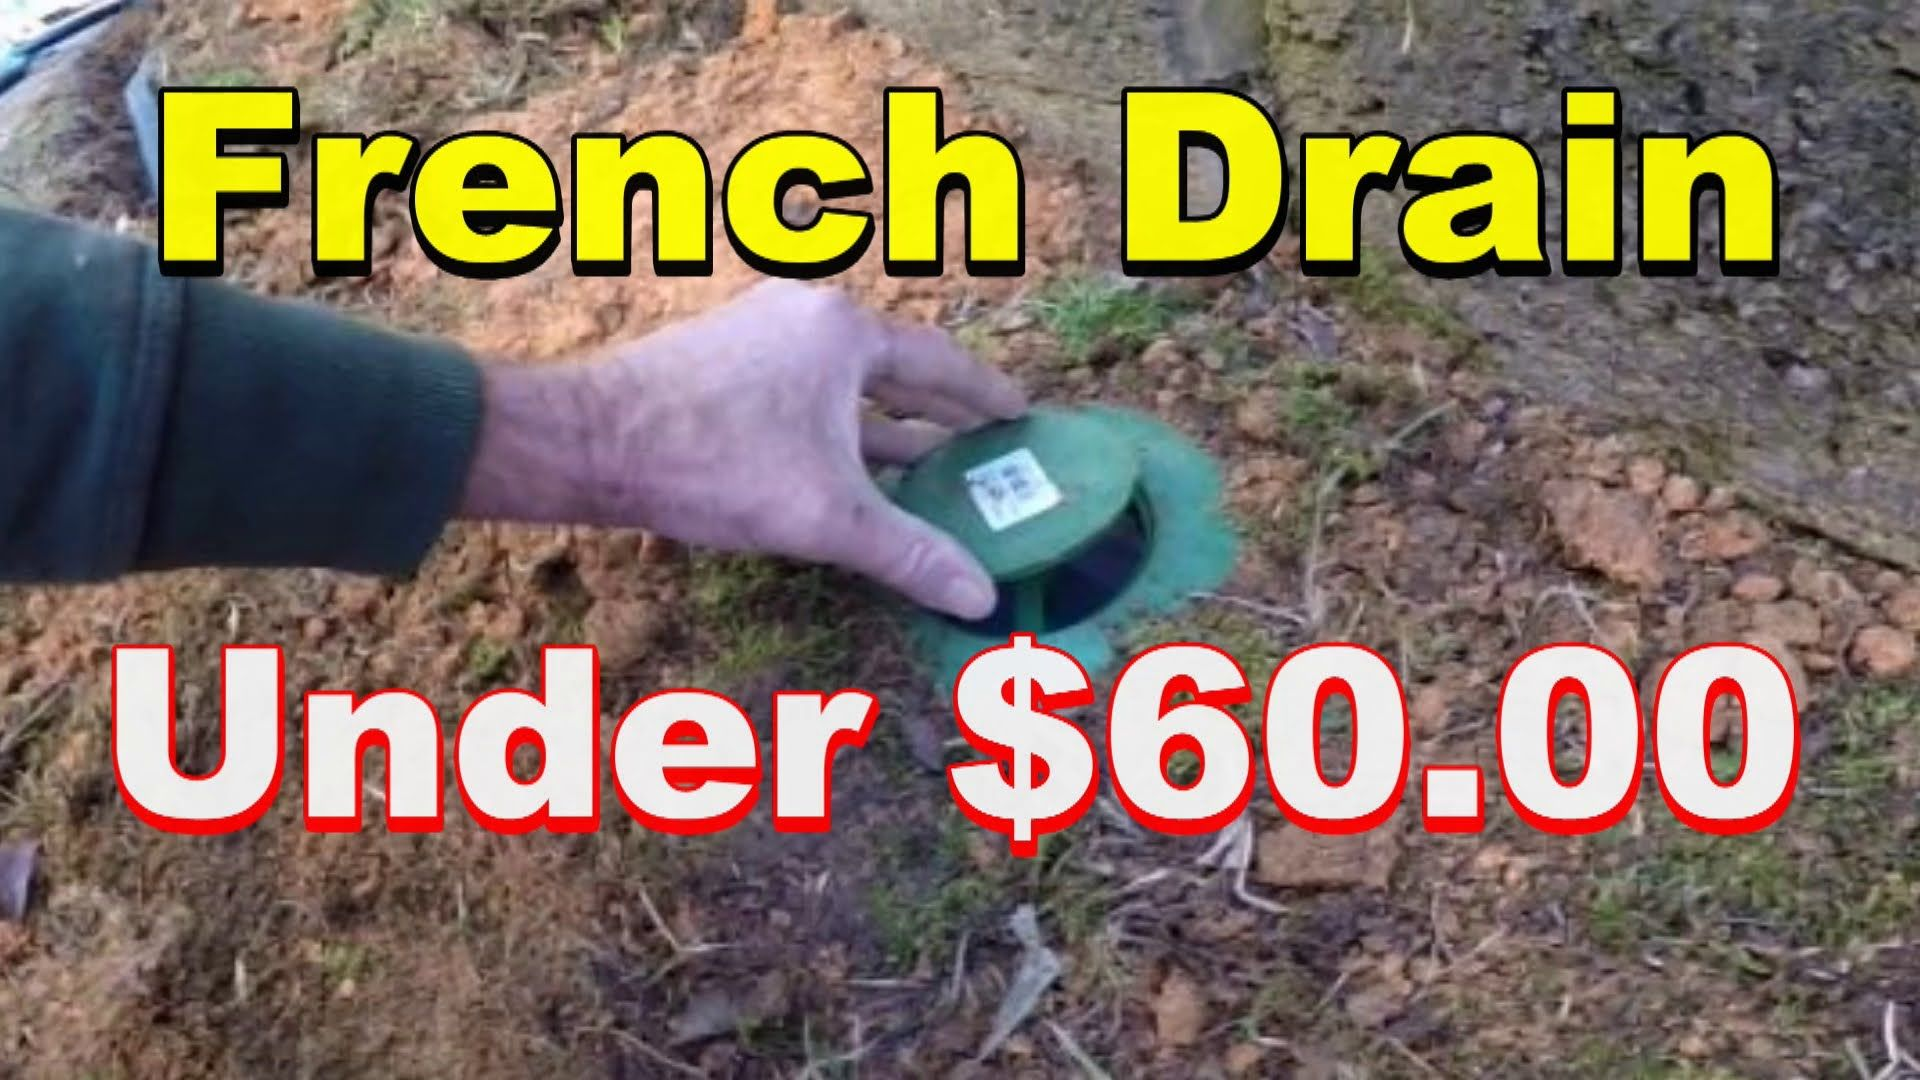 Do it yourself french drain under 6000 for the home do it yourself french drain under 6000 solutioingenieria Choice Image